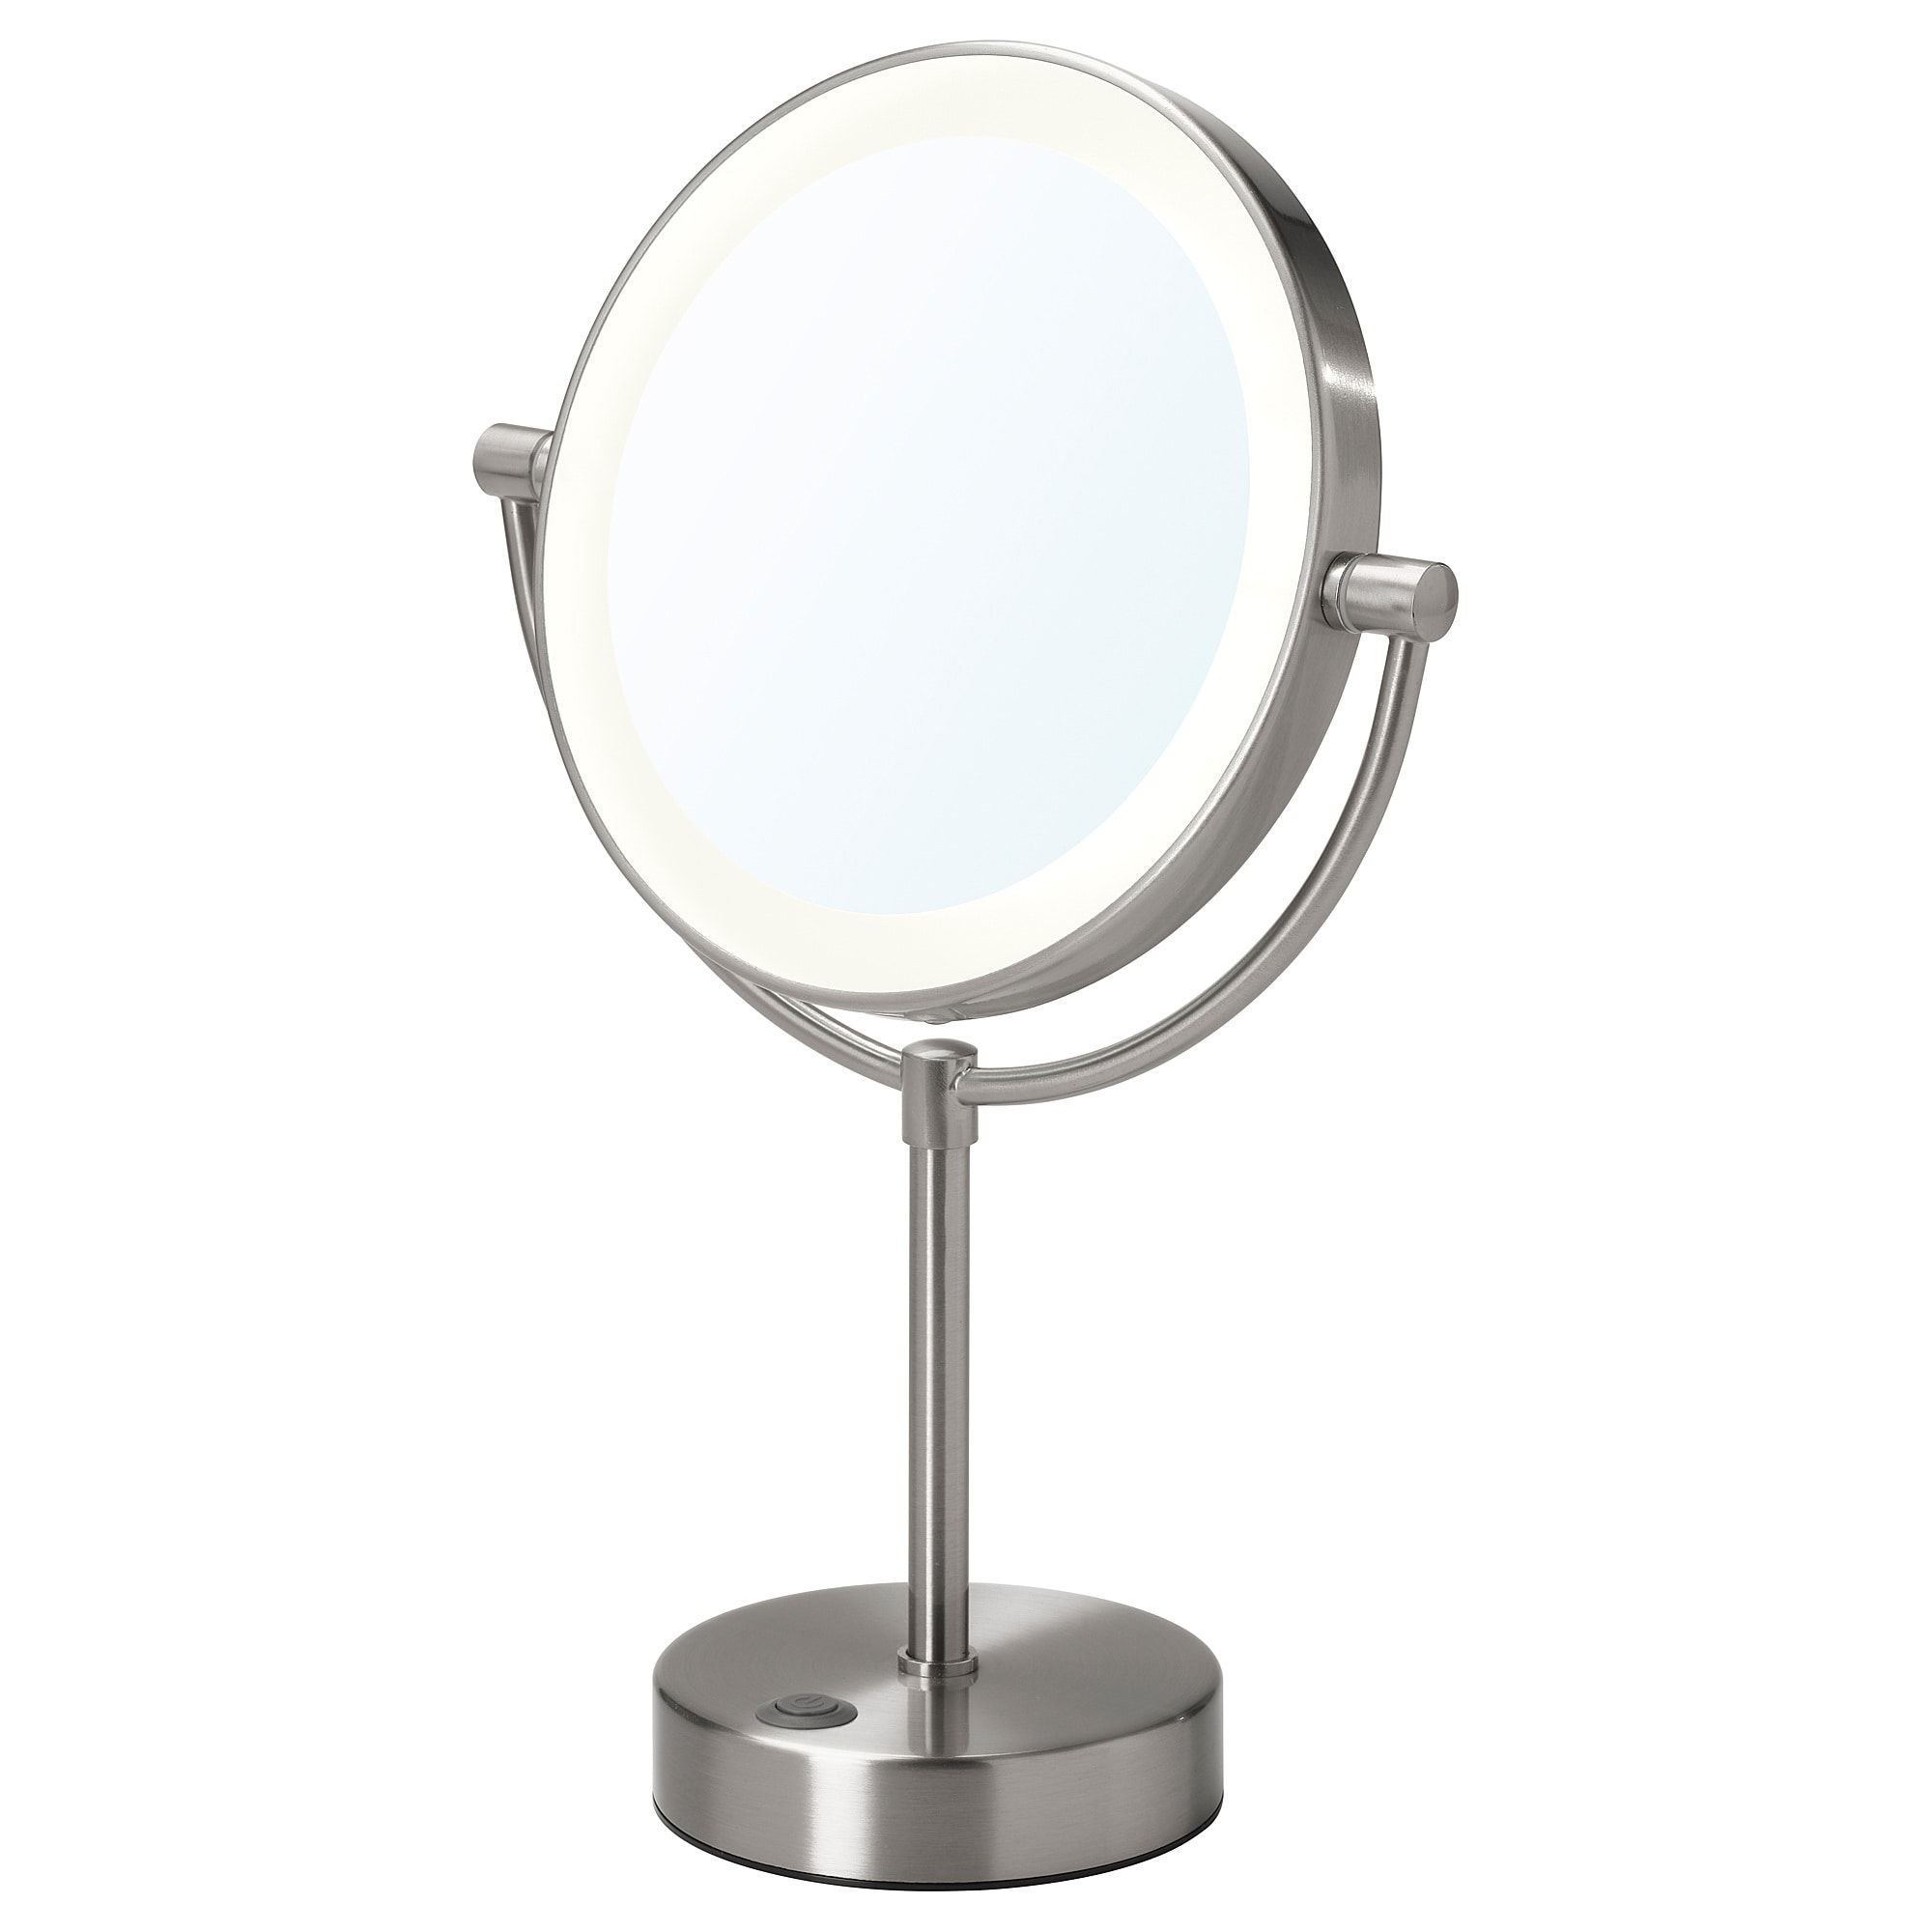 Kaitum Mirror With Built In Light Battery Operated 7 7 8 Mirror With Built In Lights Mirror Magnifying Mirror